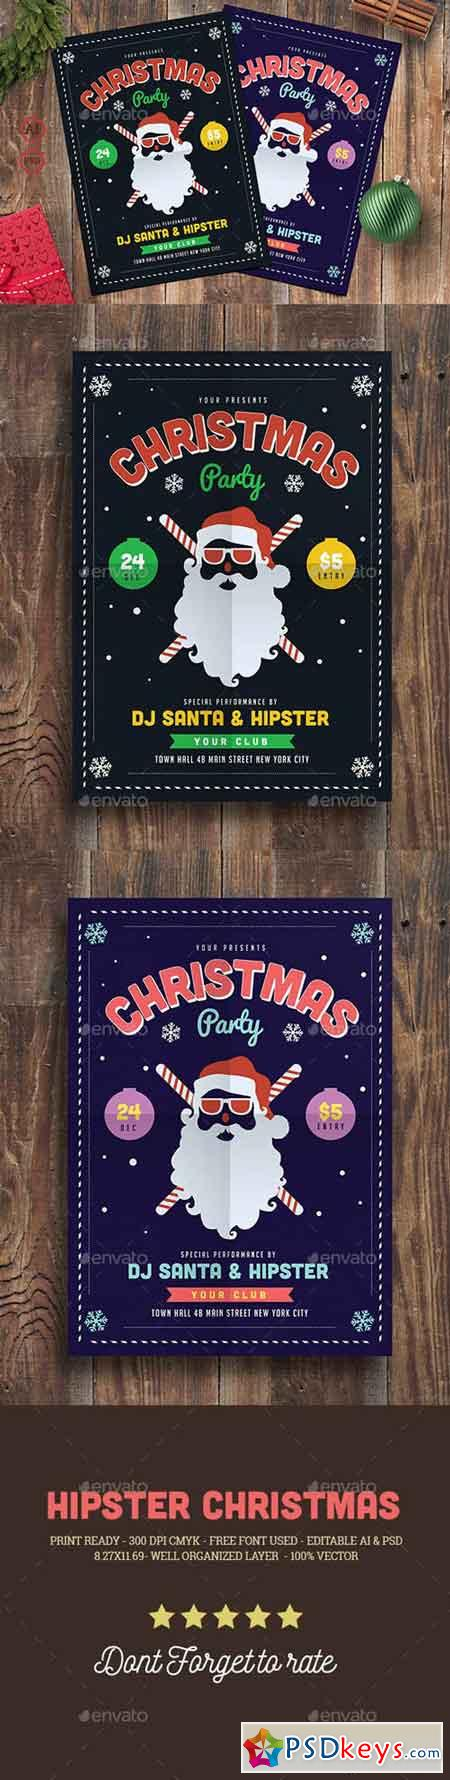 Hipster Christmas Party Flyer 19082268